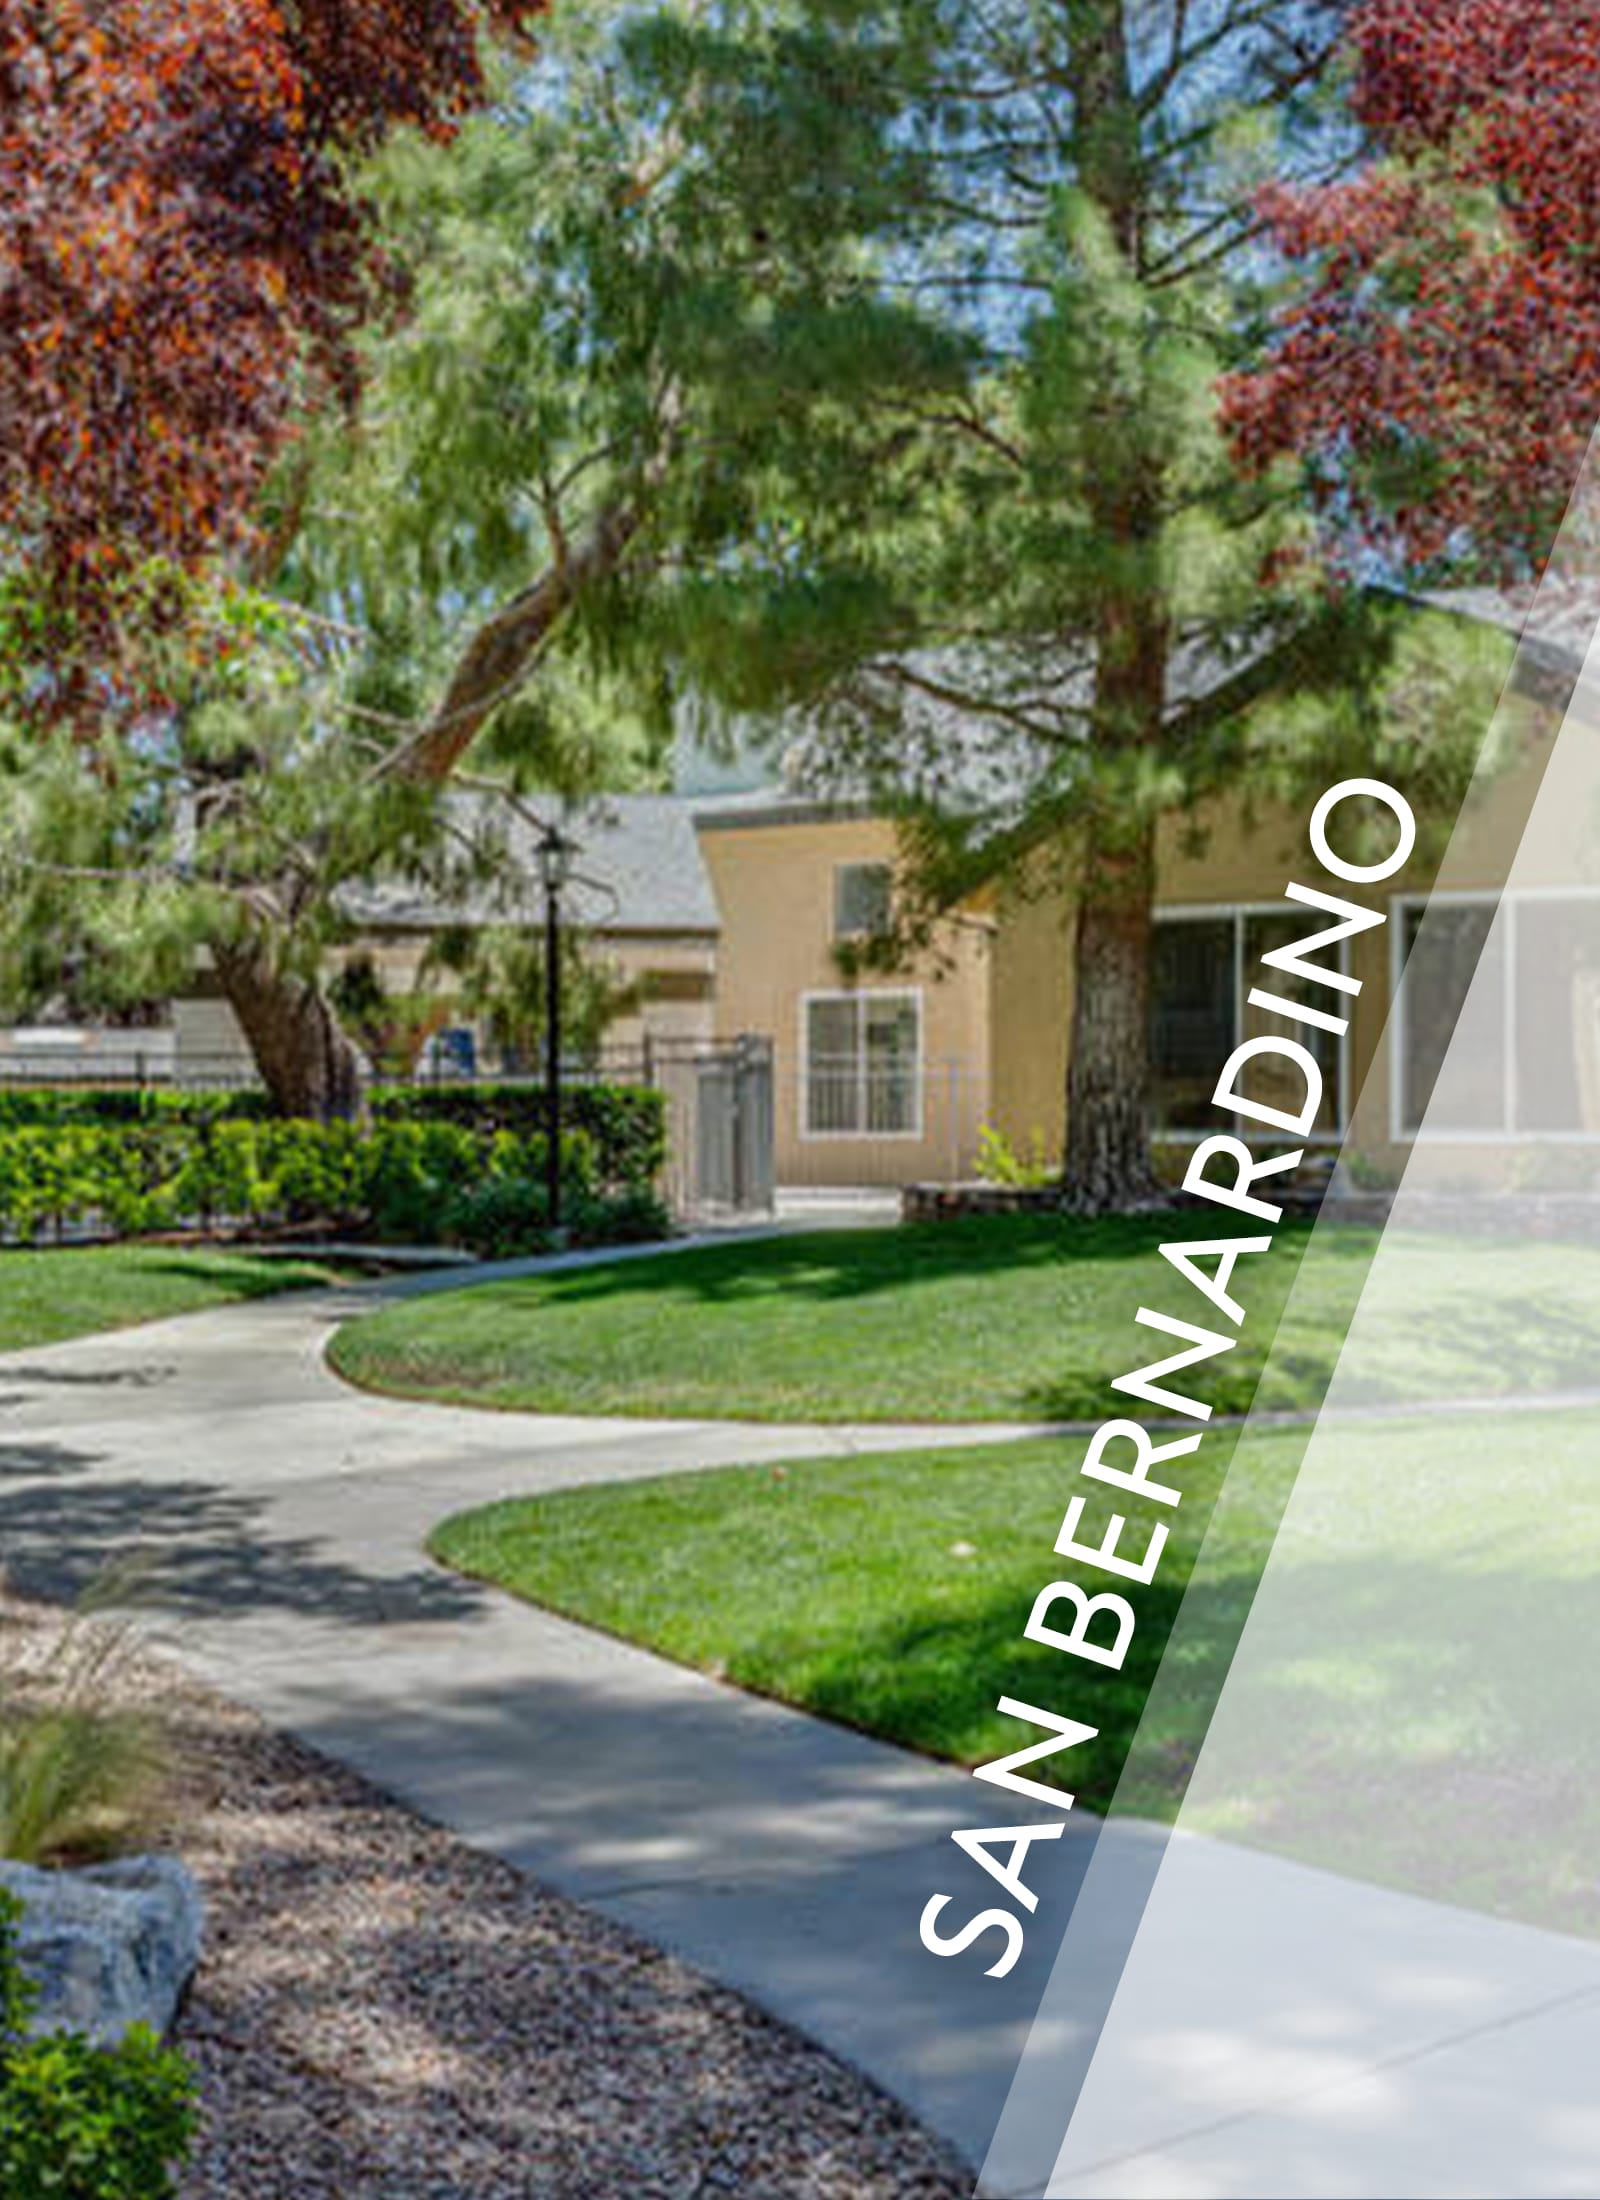 View luxury apartment communities in San Bernardino by E&S Ring Management Corporation in Los Angeles, California